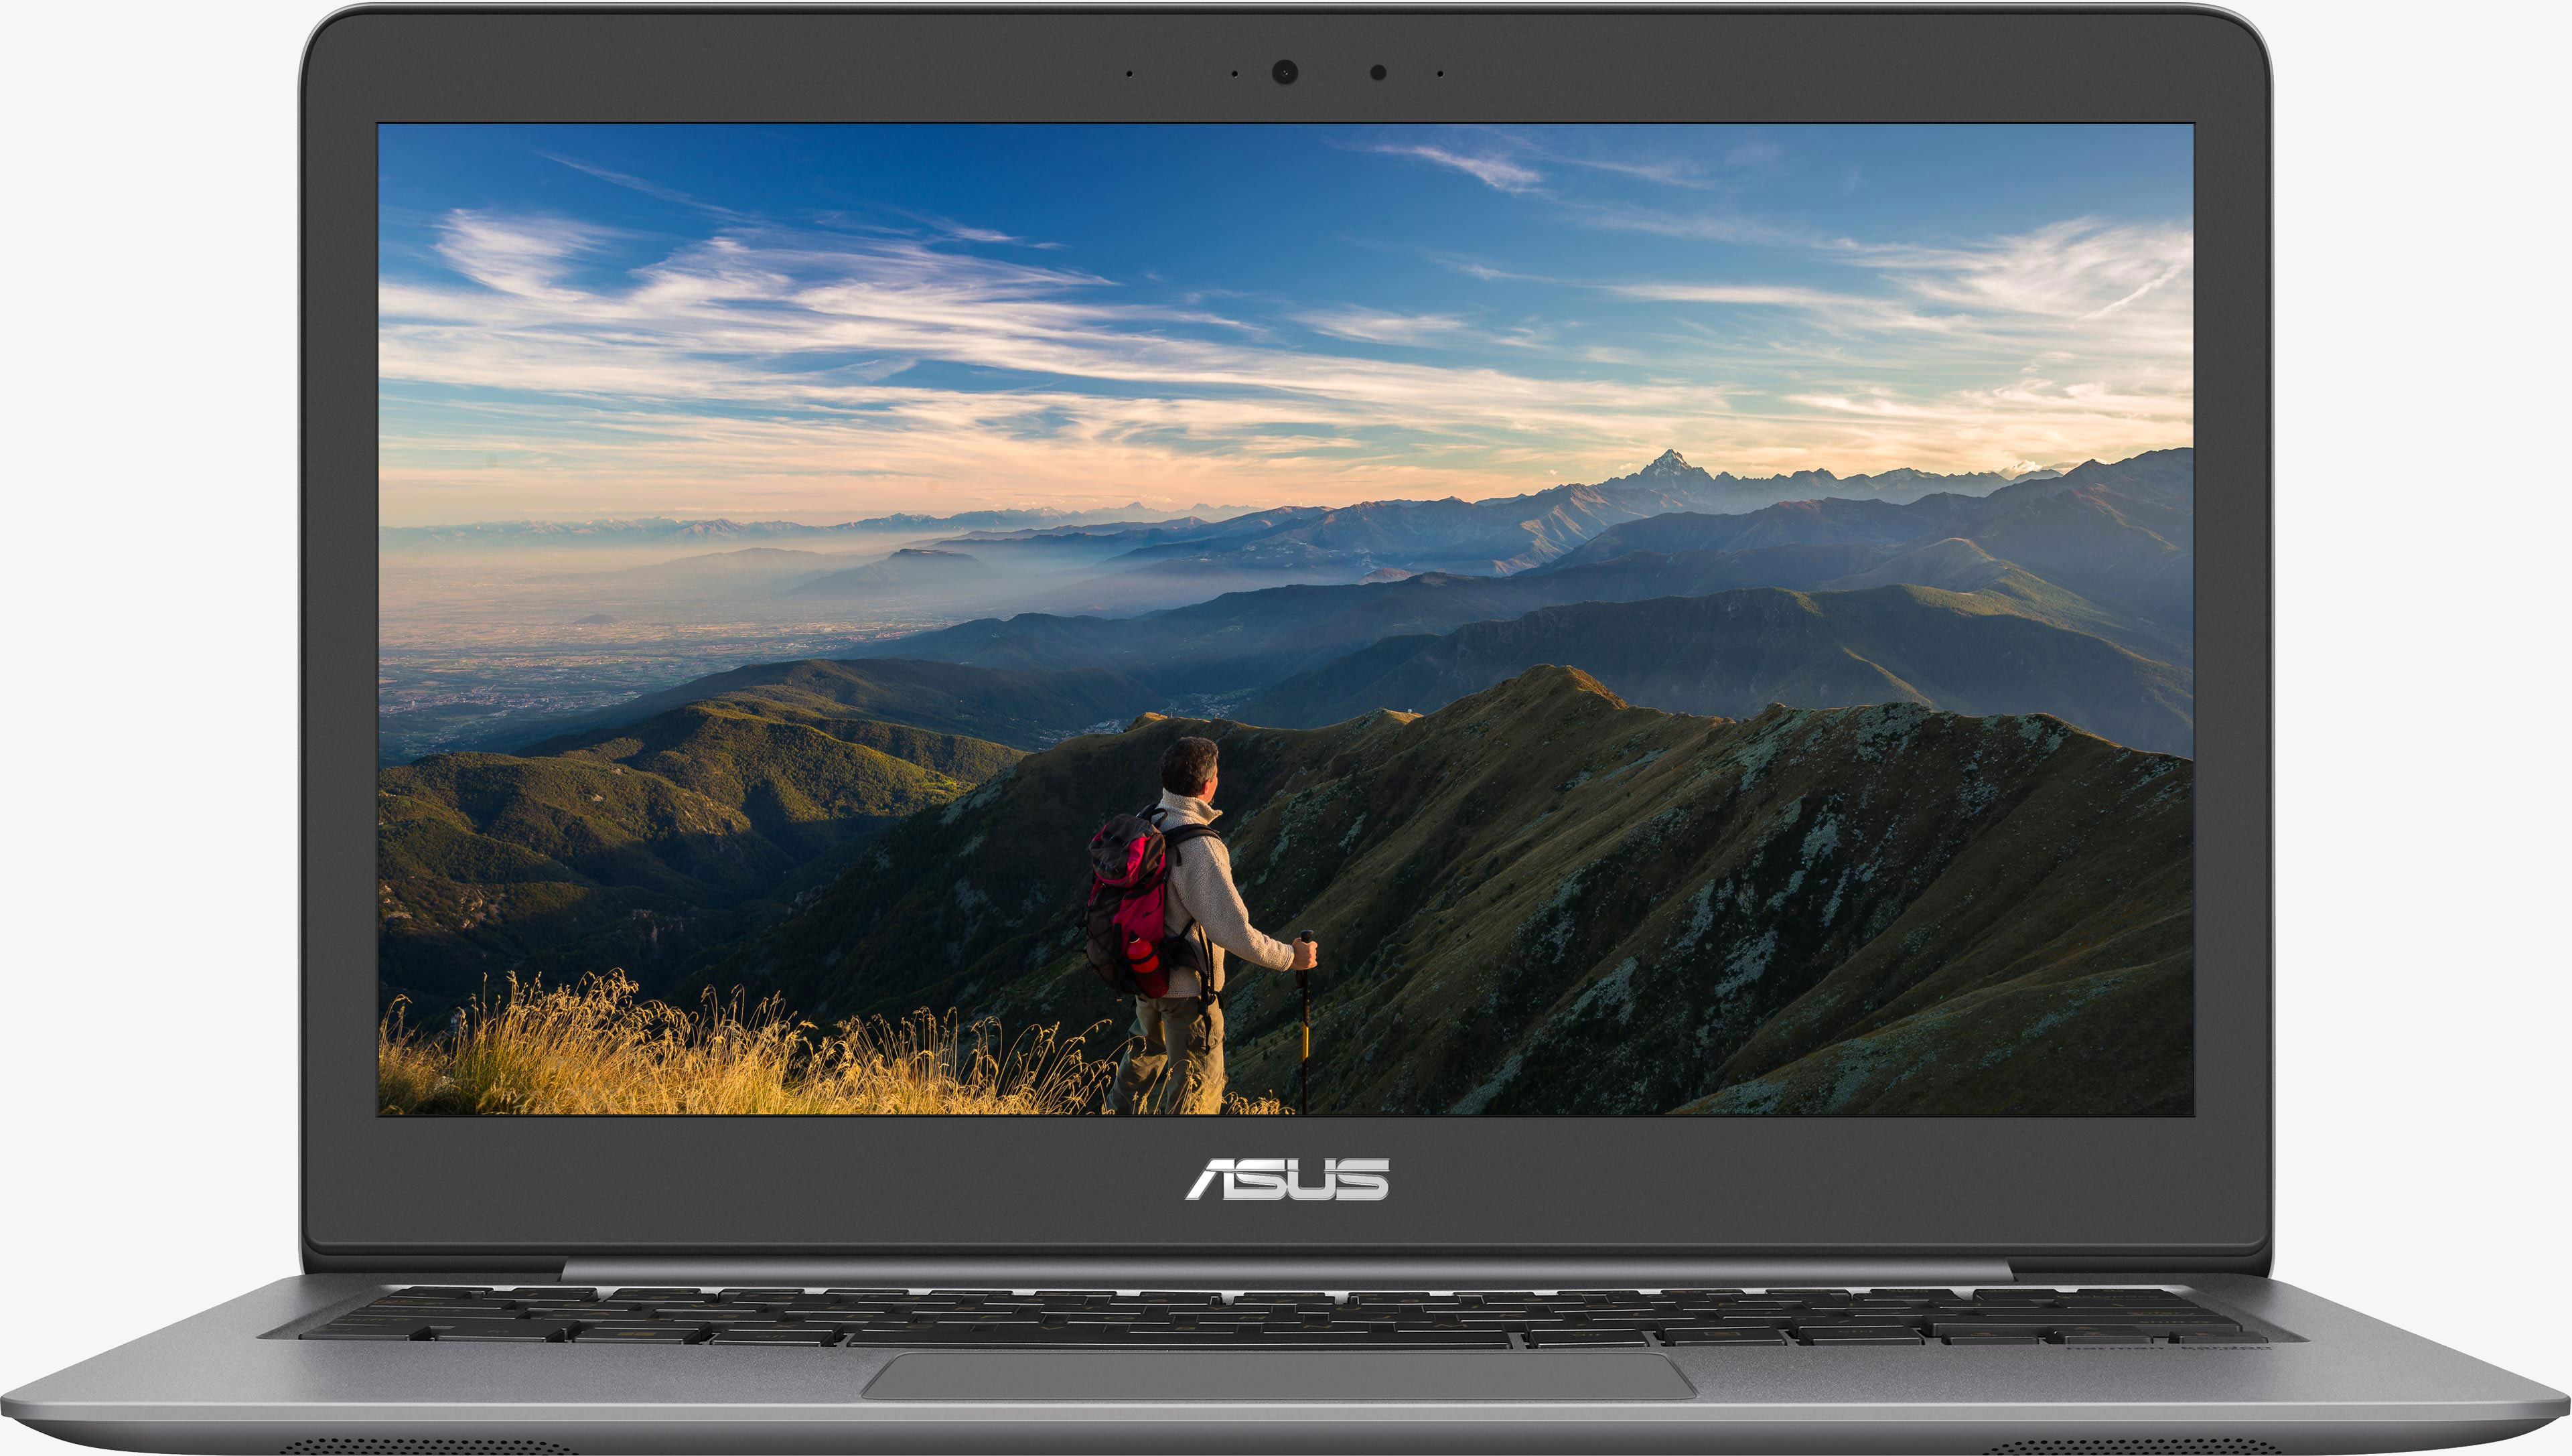 Ultrabook Asus ZenBook UX310UQ 13.3 QHD Intel Core i7-7500 940MX-2GB RAM 16GB HDD 1TB + SSD 256GB Windows 10 Pro Grey